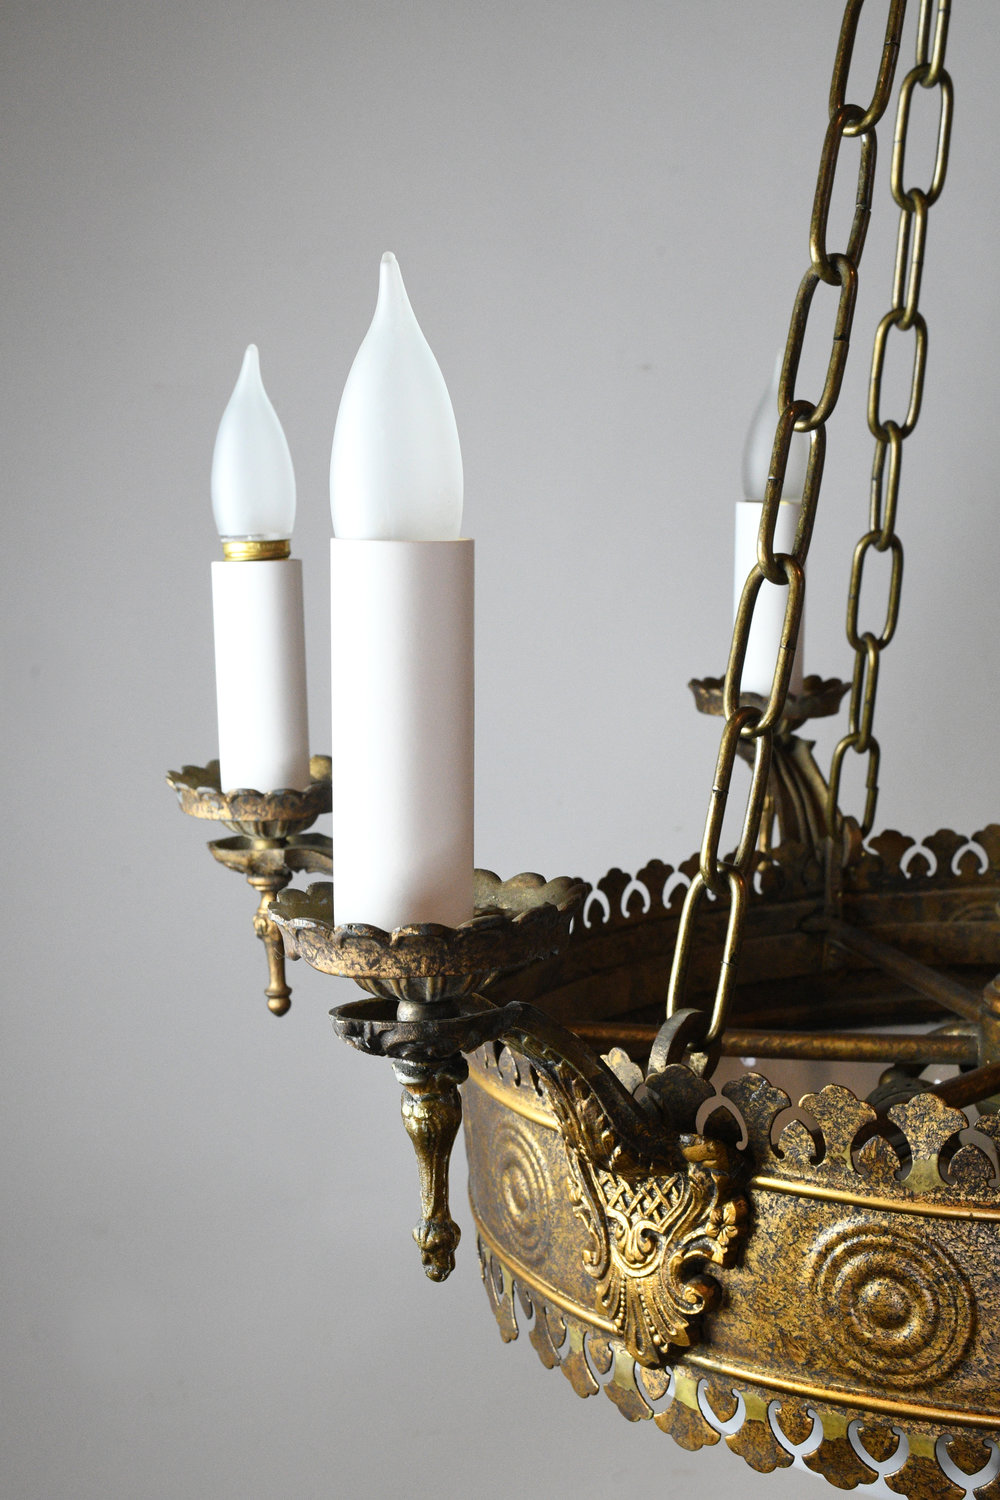 47529-6-candle-tudor-brass-chand-with-bent-glass-detail-2.jpg